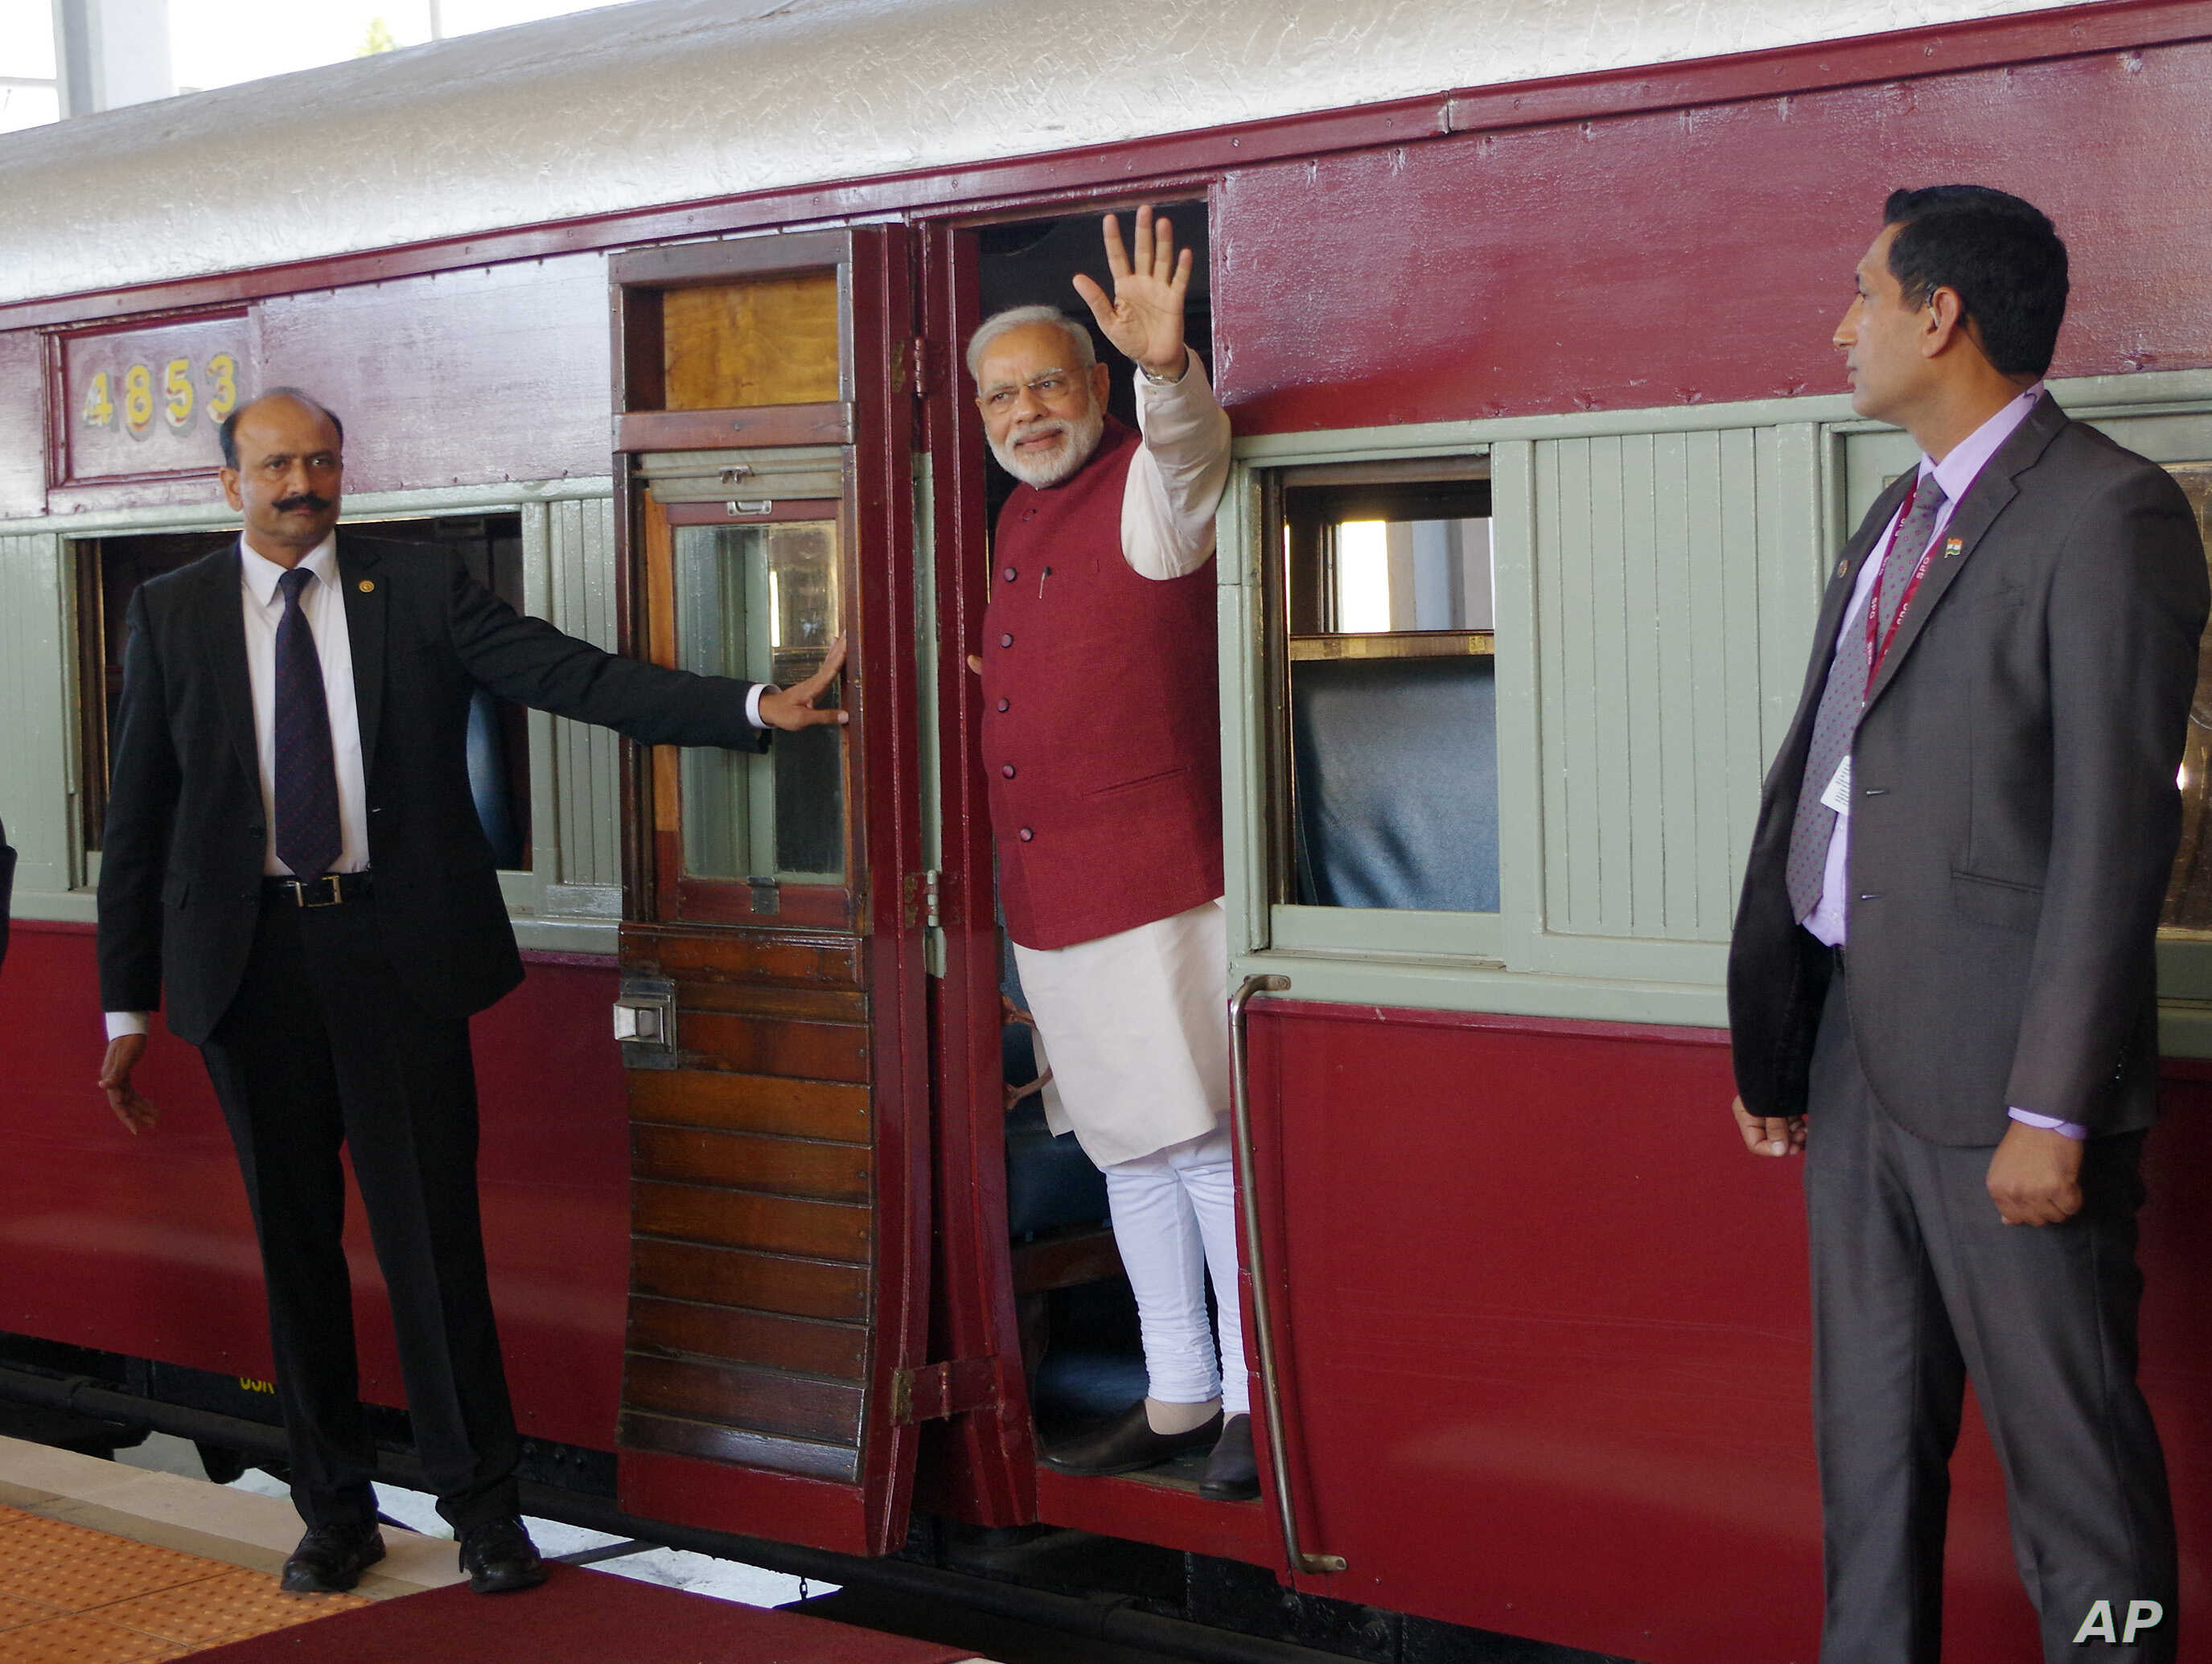 Indian Prime Minister Narendra Modi waves from a train carriage at Pentrich Railway station in Pietermaritzburg, South Africa, July 9, 2016. Modi took the same trip that Mahatma Gandhi took in 1893 when he was thrown off the train because of his race